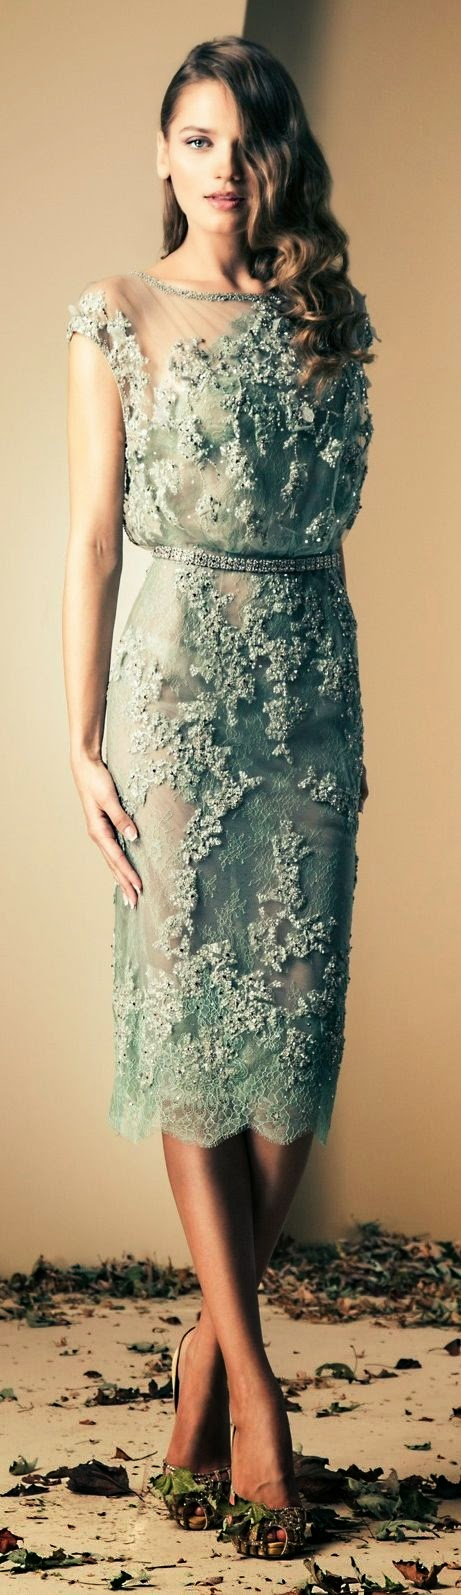 All evening dress ideas from styleknowhows